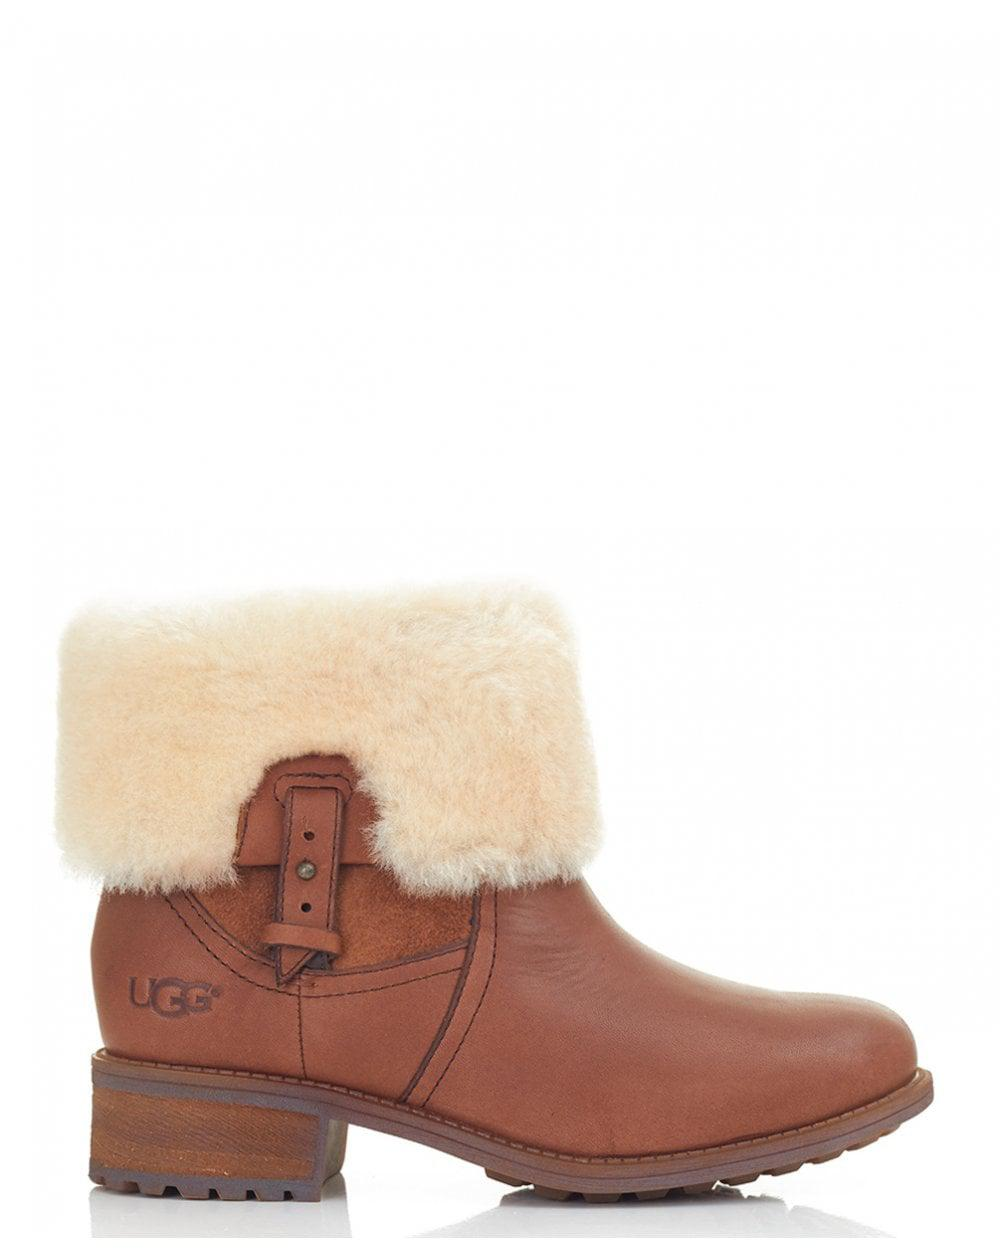 48003929541 Ugg Brown Chyler Leather Fold Over Boots